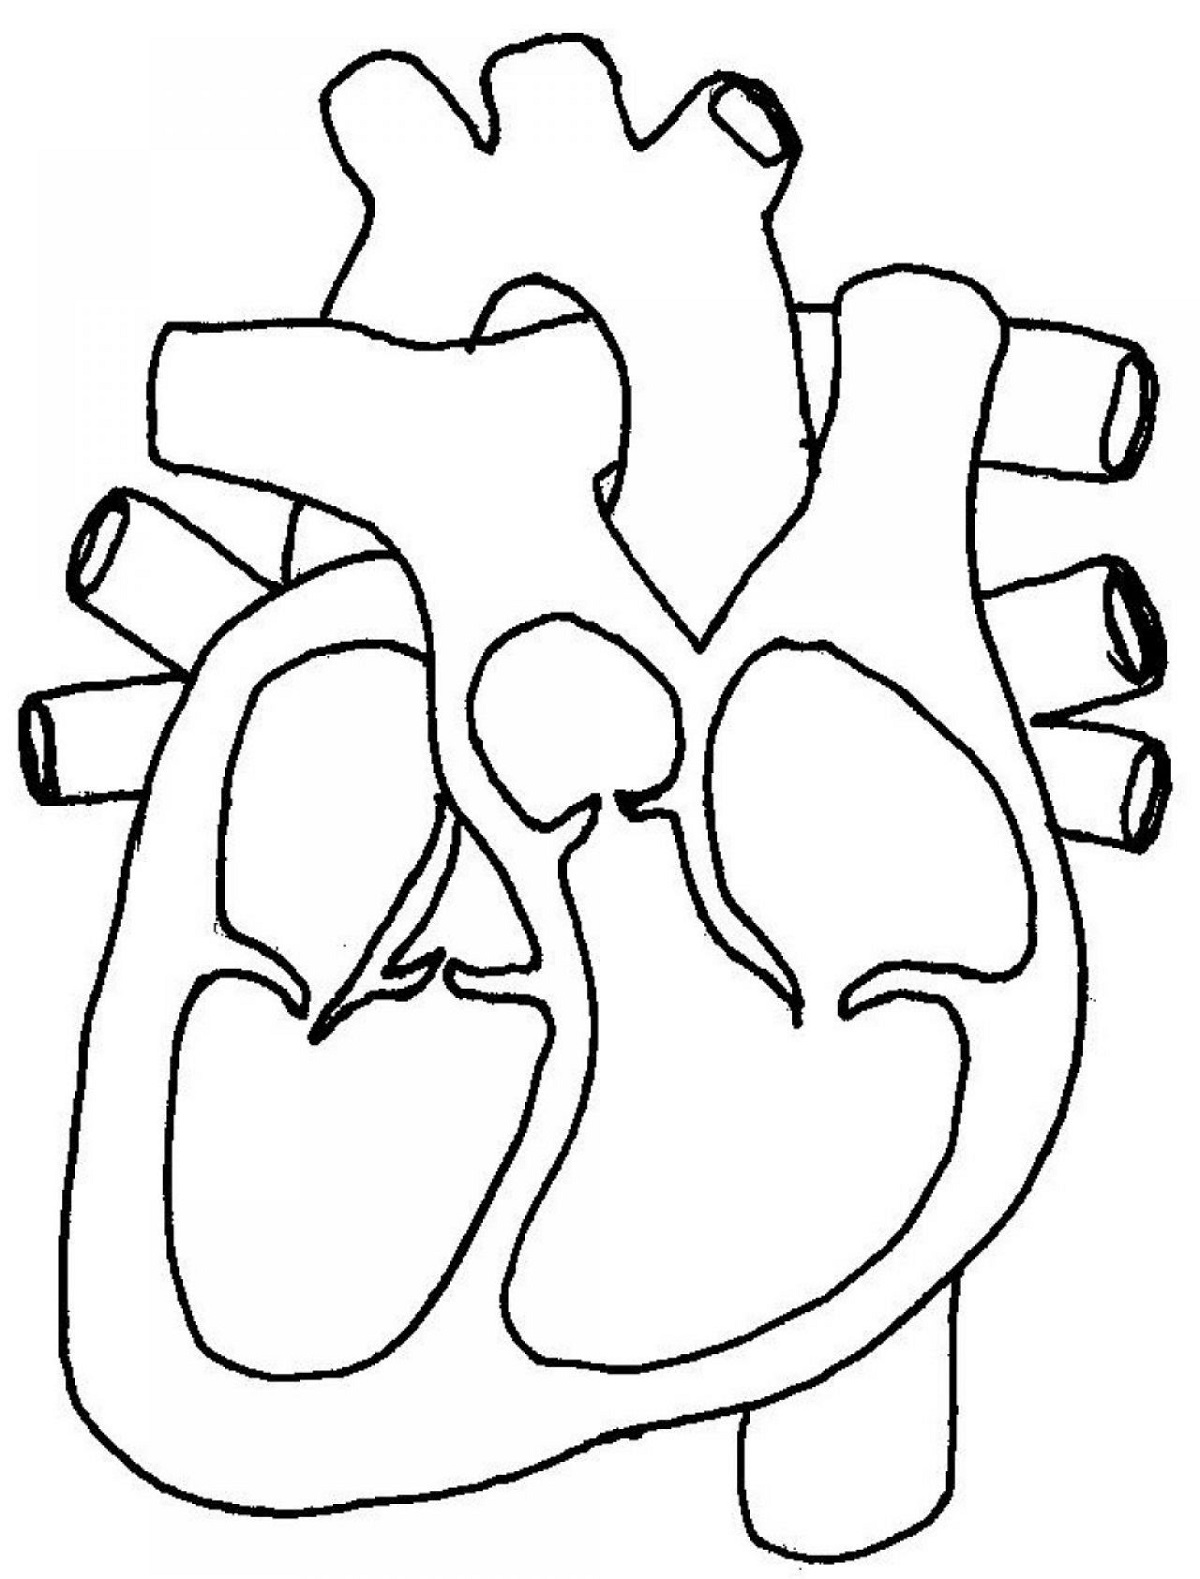 Human Heart Simple Drawing At Getdrawings